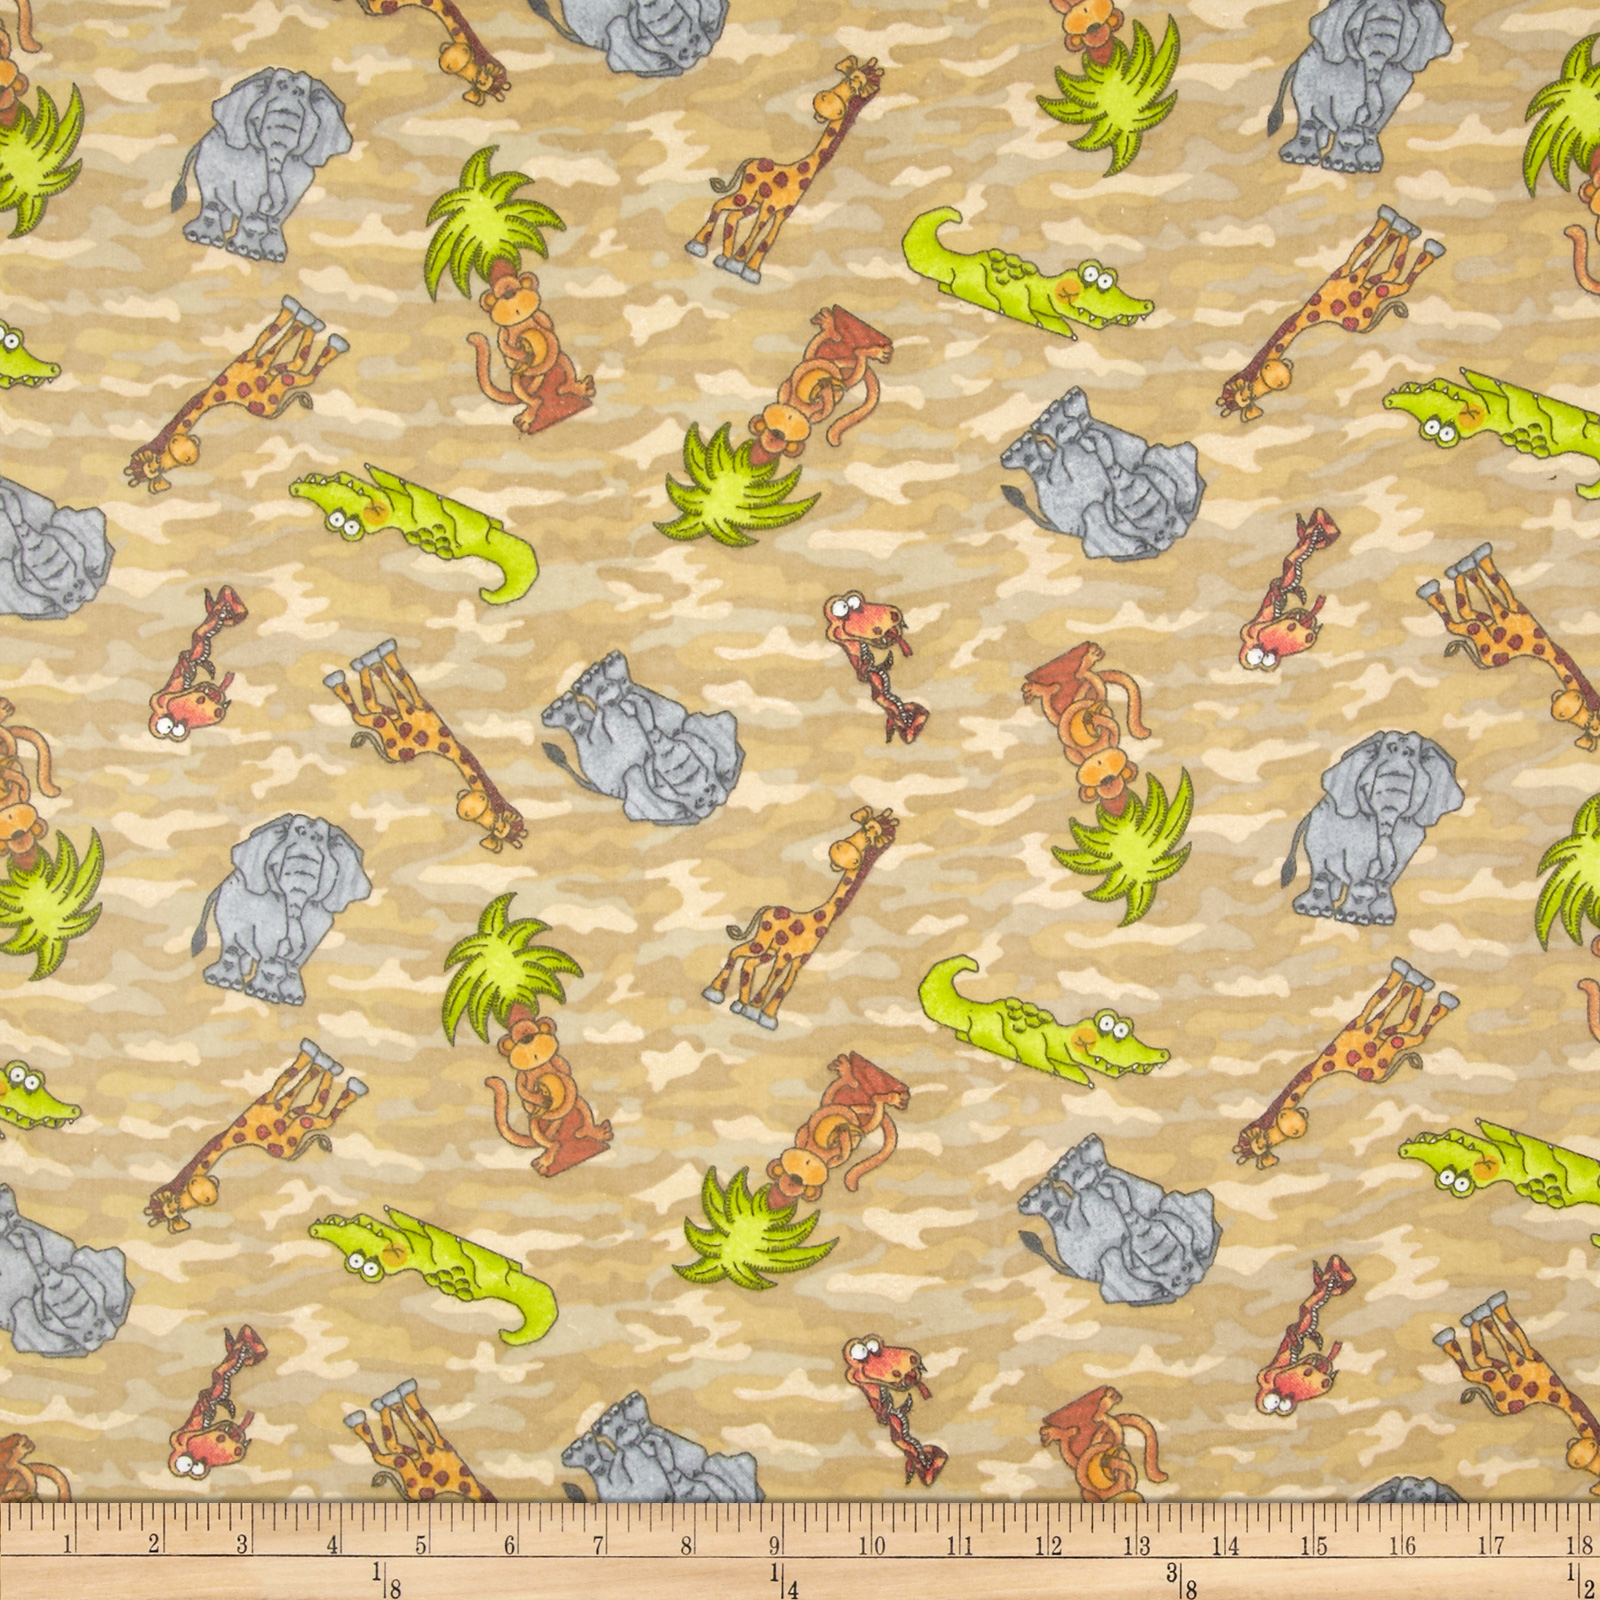 Comfy Flannel Tossed Jungle Animals Camo Beige Fabric by A. E. Nathan in USA